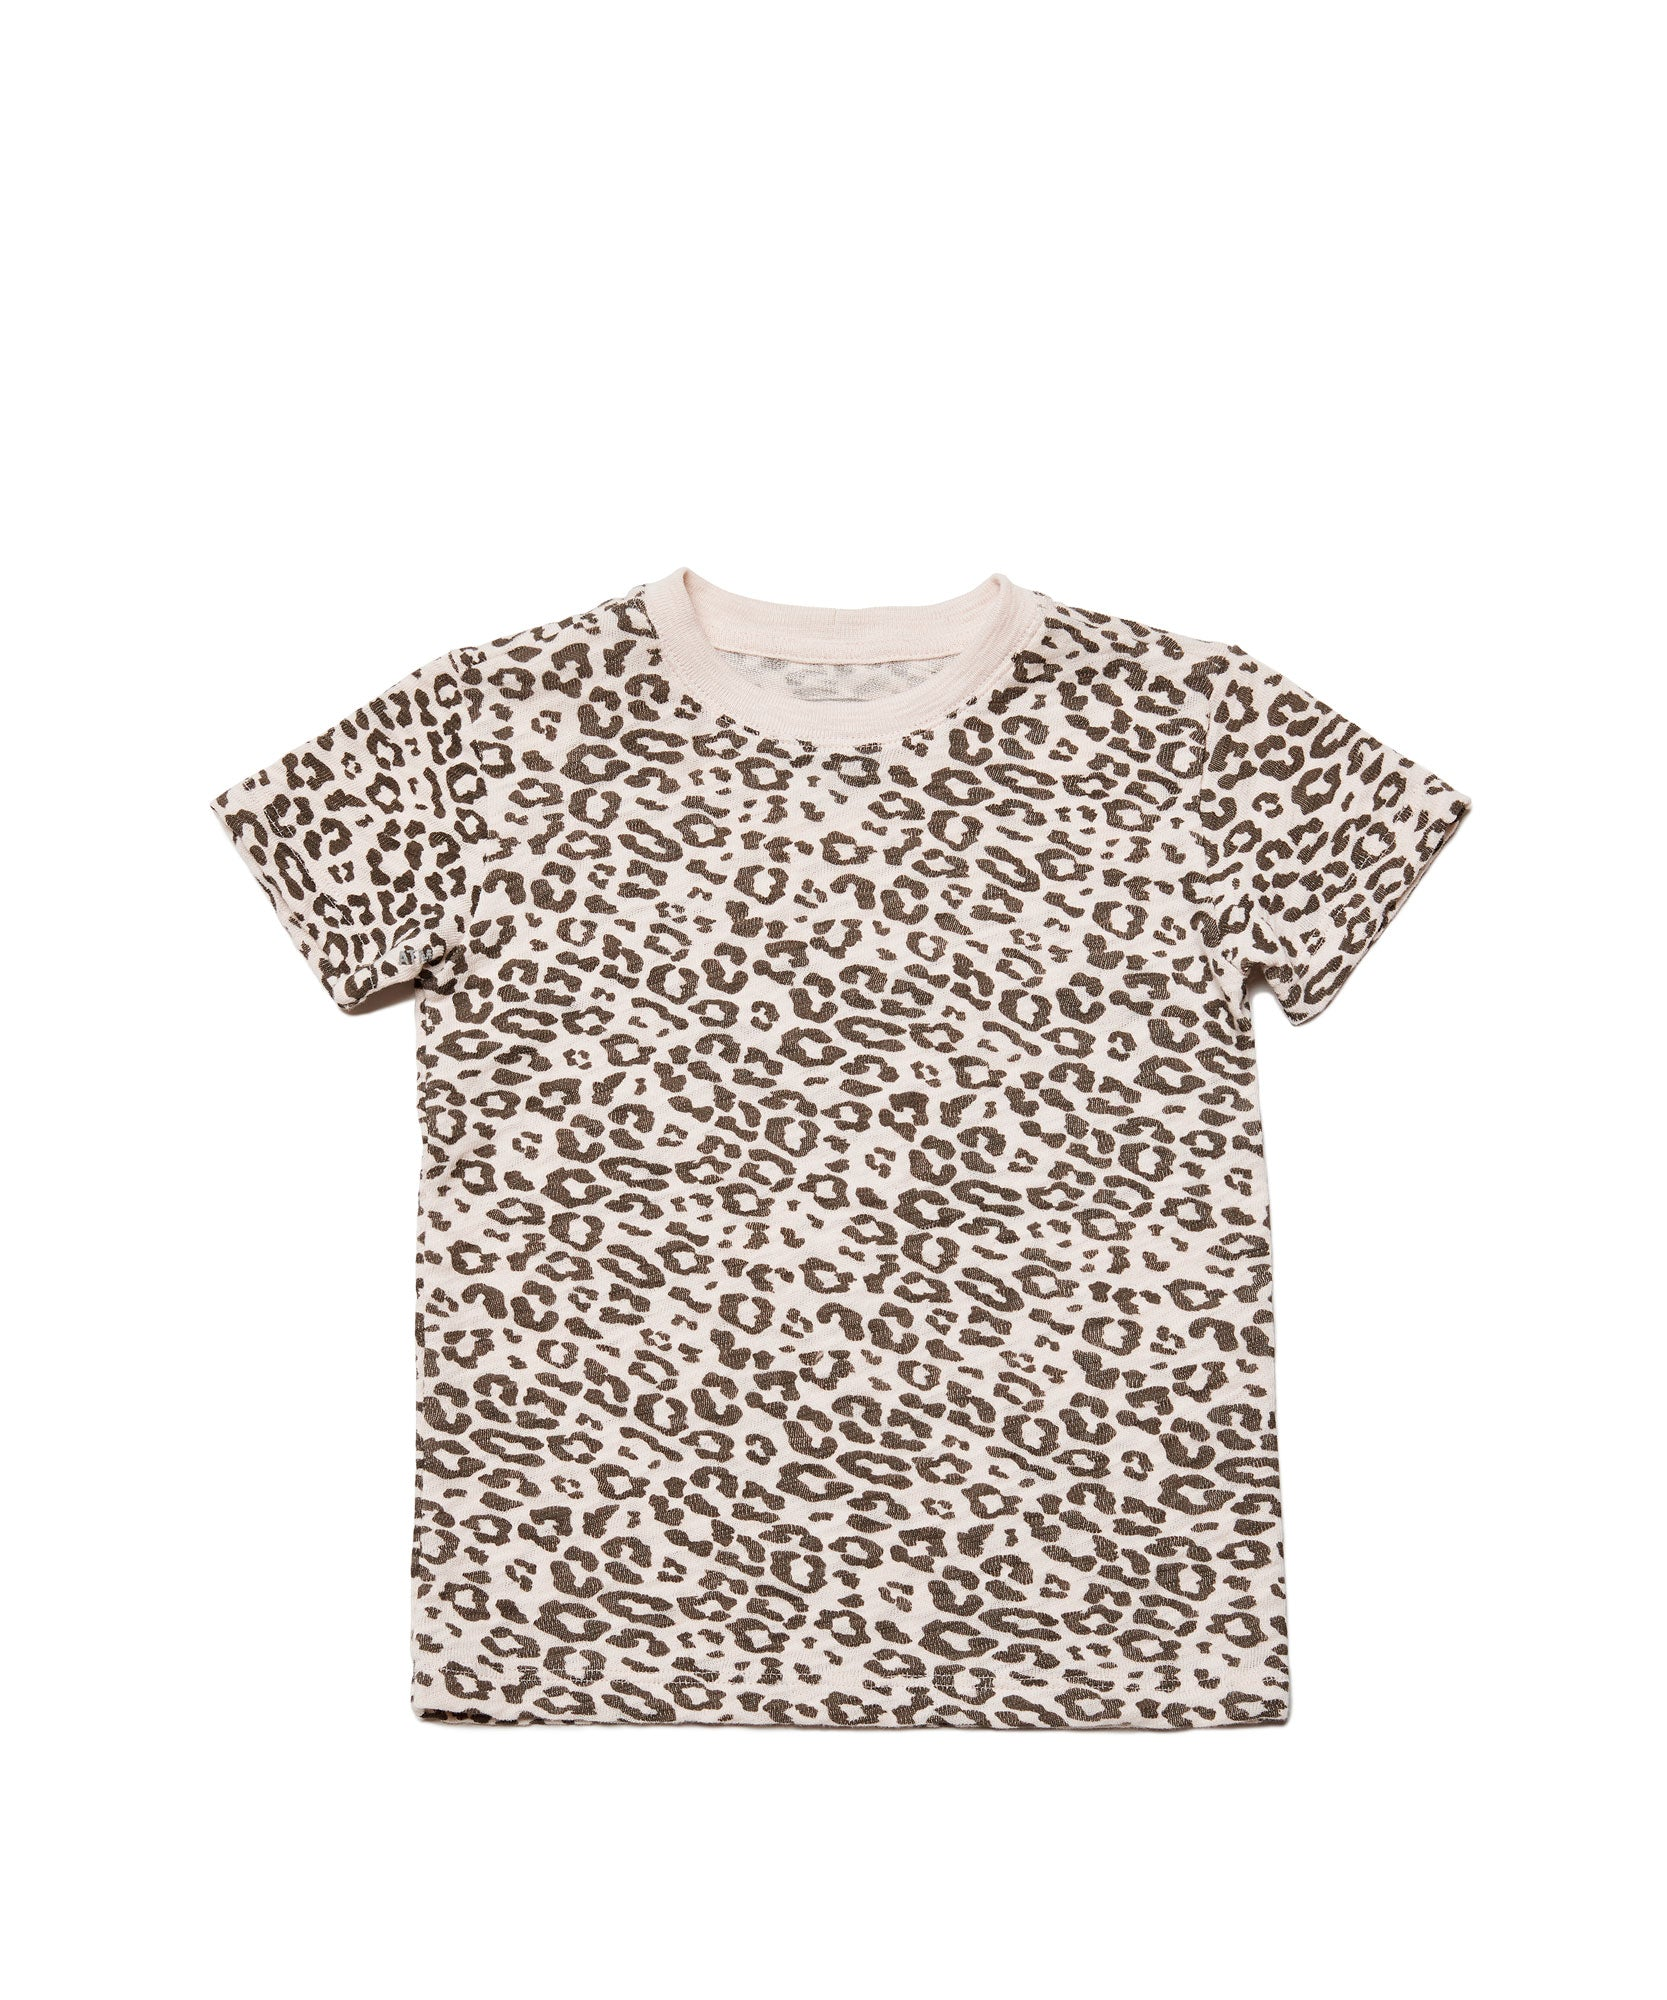 Leopard Kids Slub Jersey Short Sleeve Tee - Kid's Cotton Short Sleeve Tee by ATM Anthony Thomas Melillo